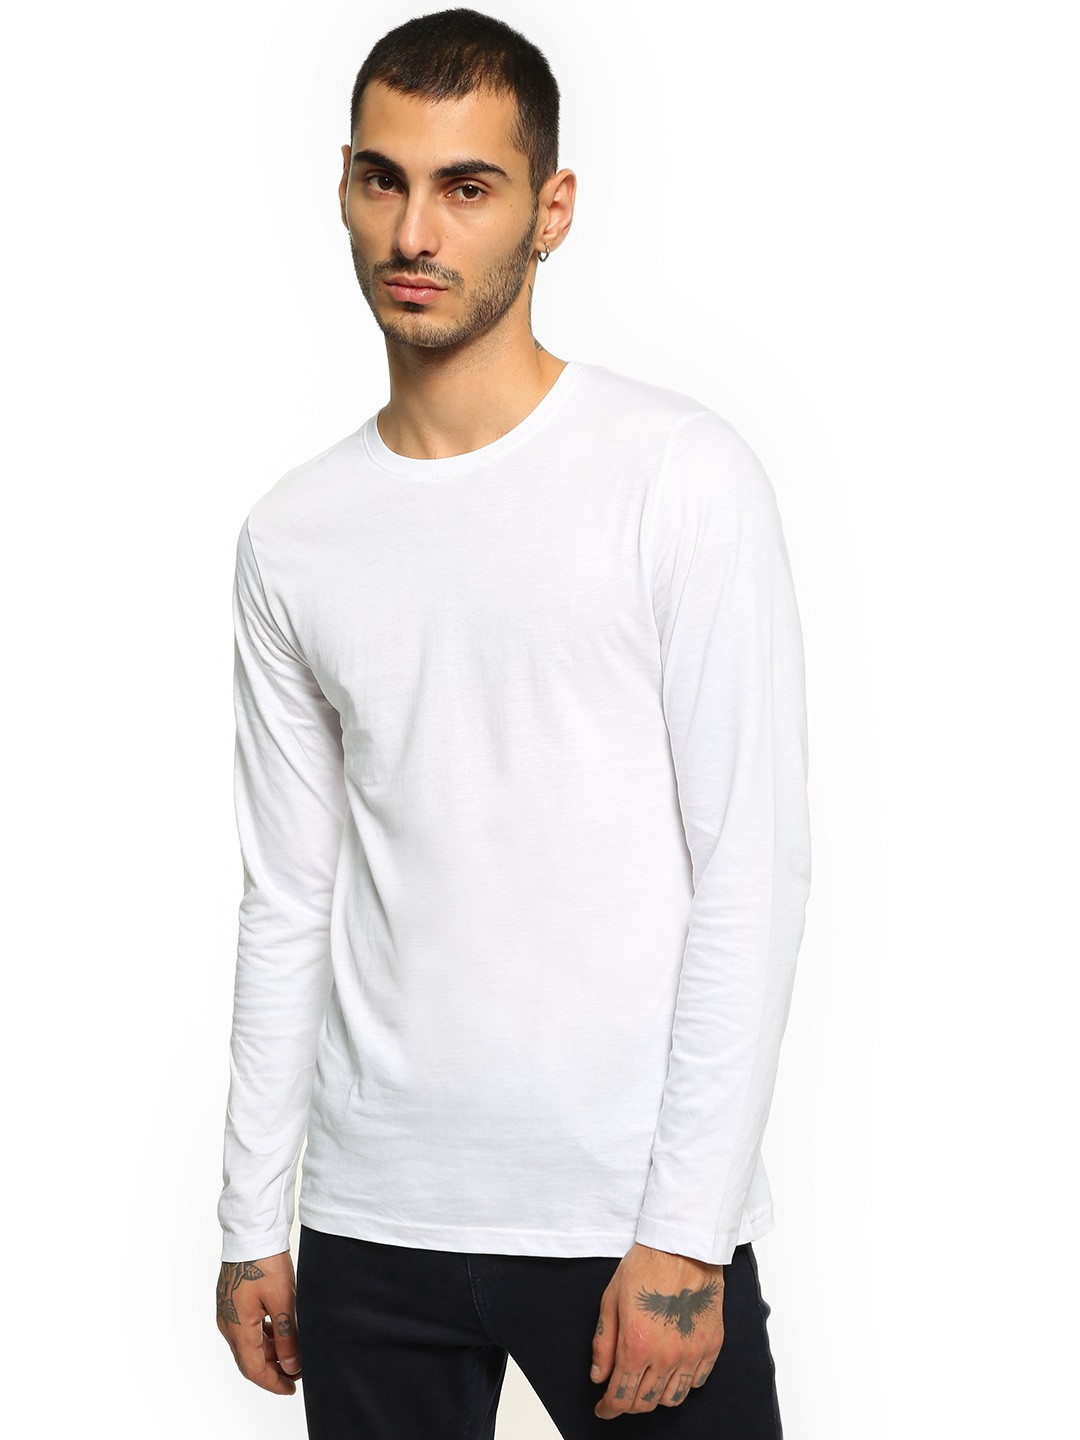 Blue Saint White Basic Long Sleeve T-Shirt 1